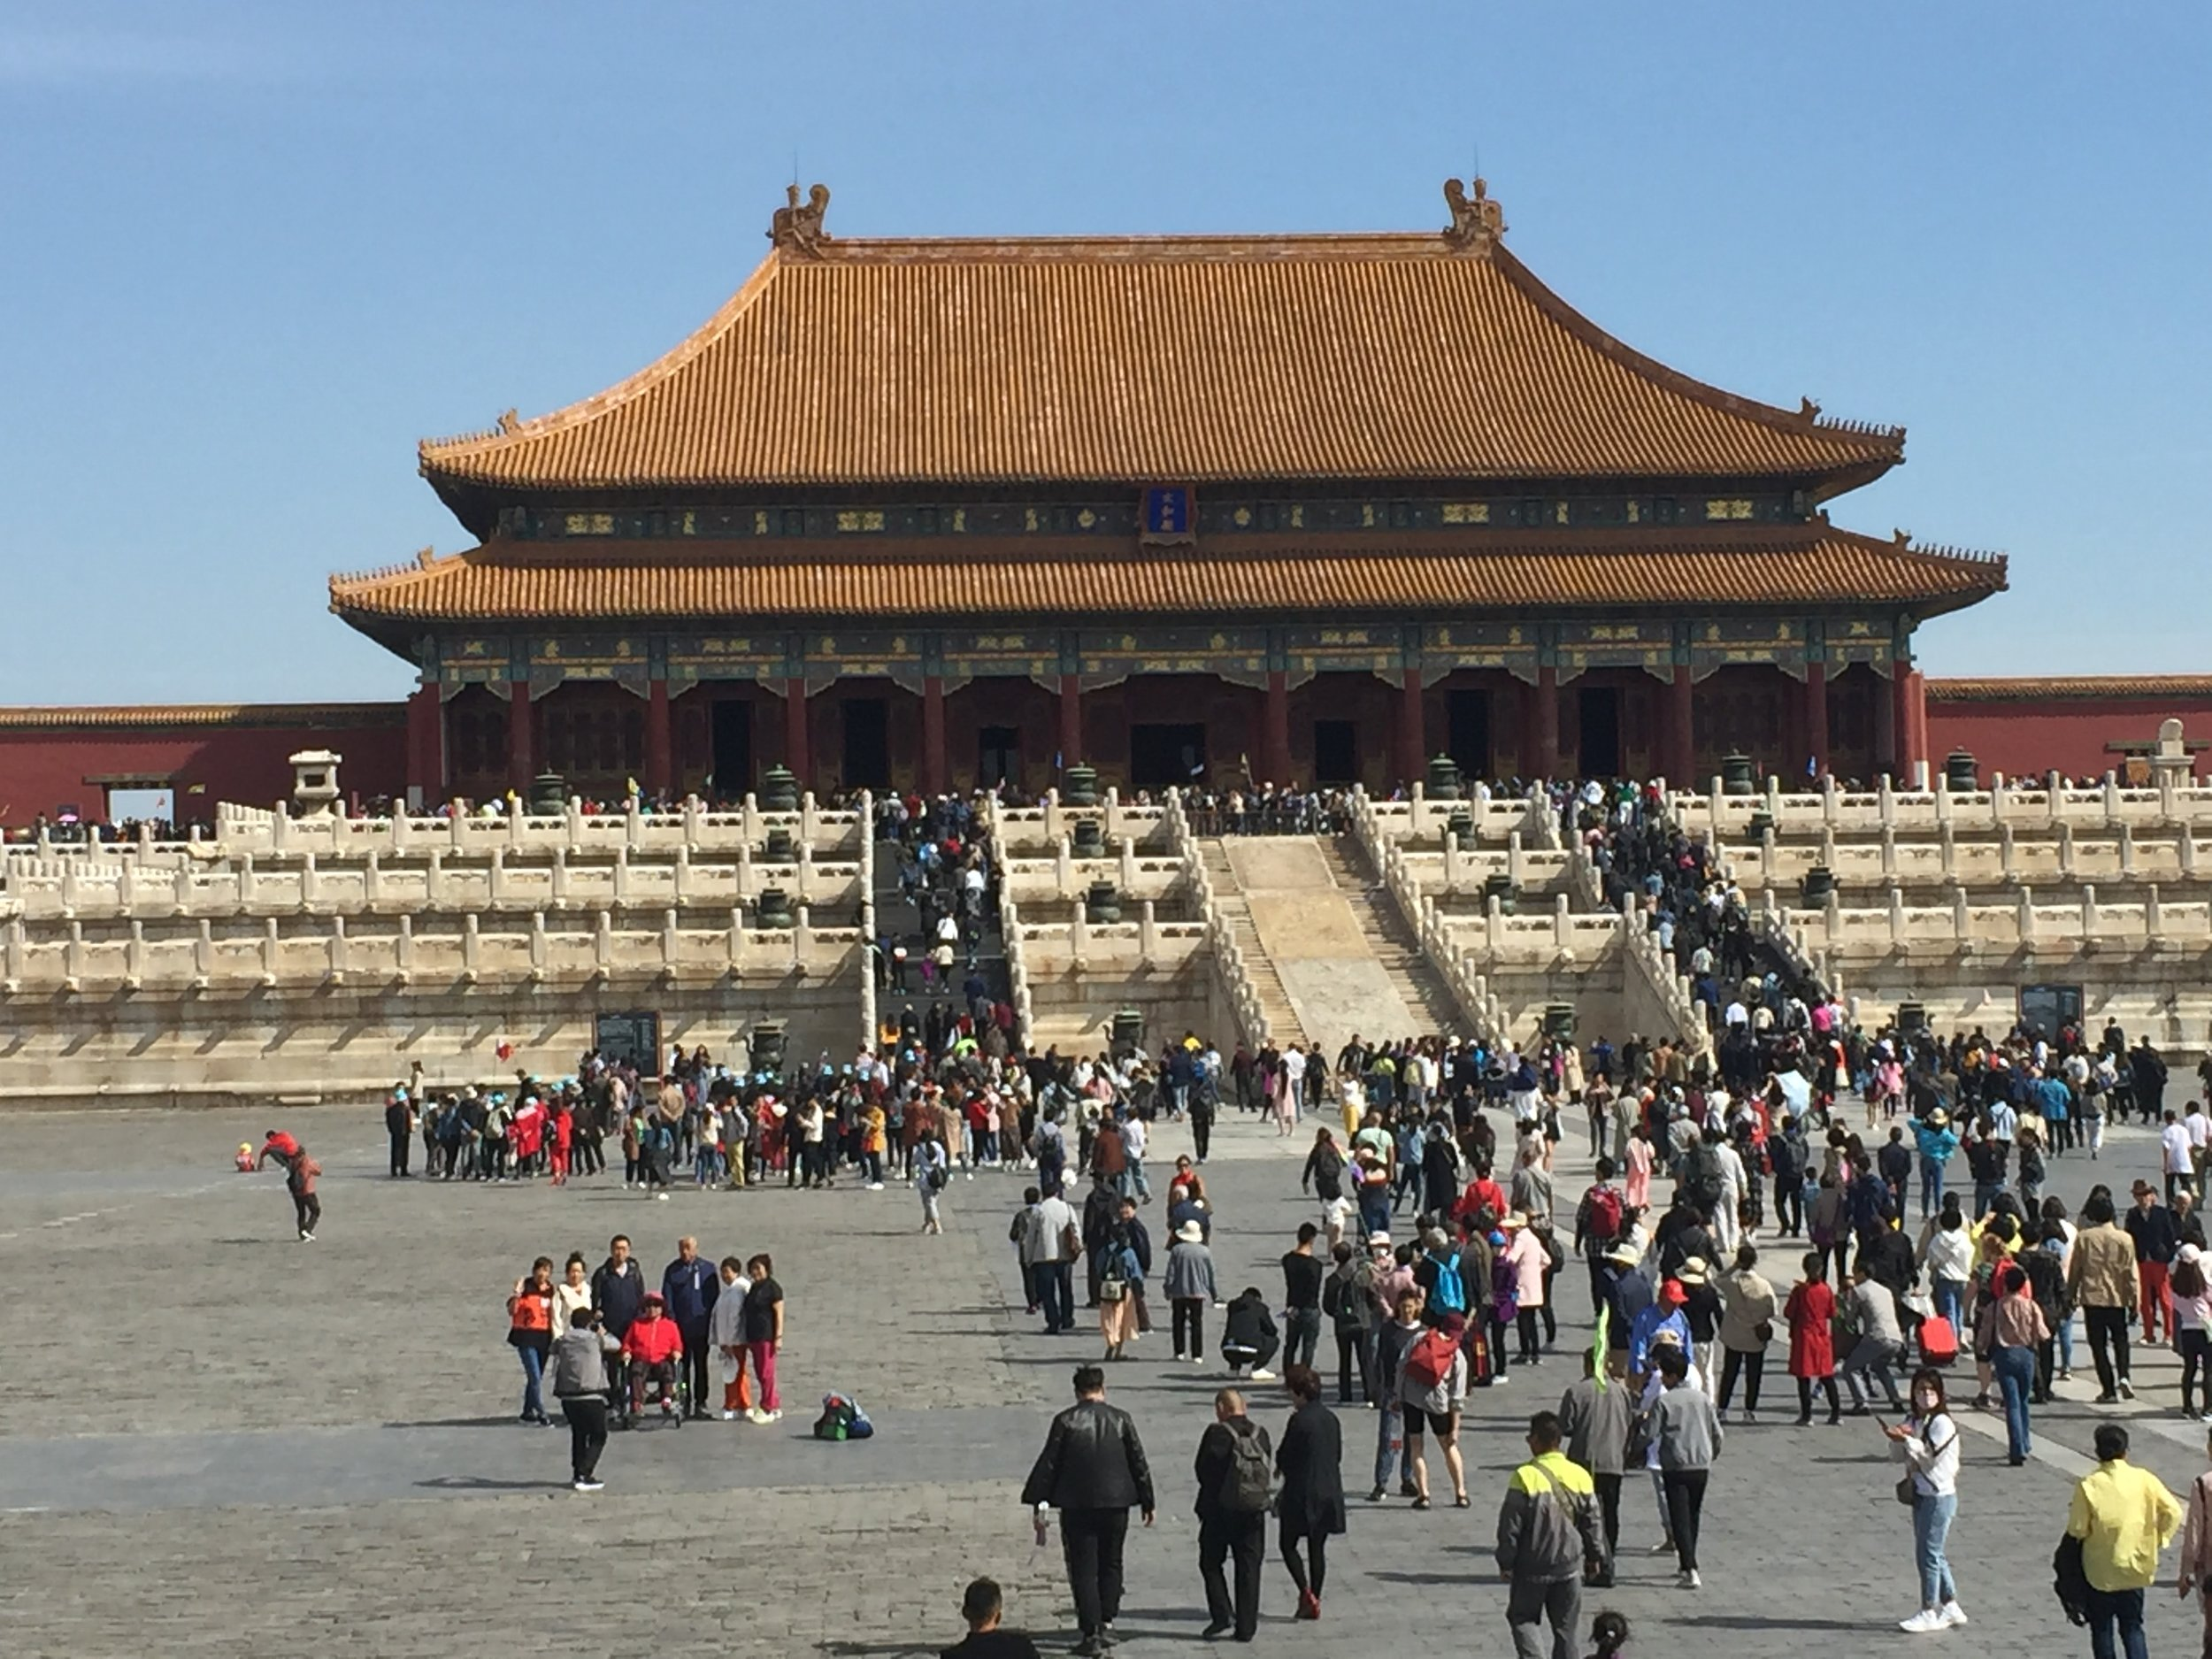 Sightseeing at the Forbidden City in Beijing